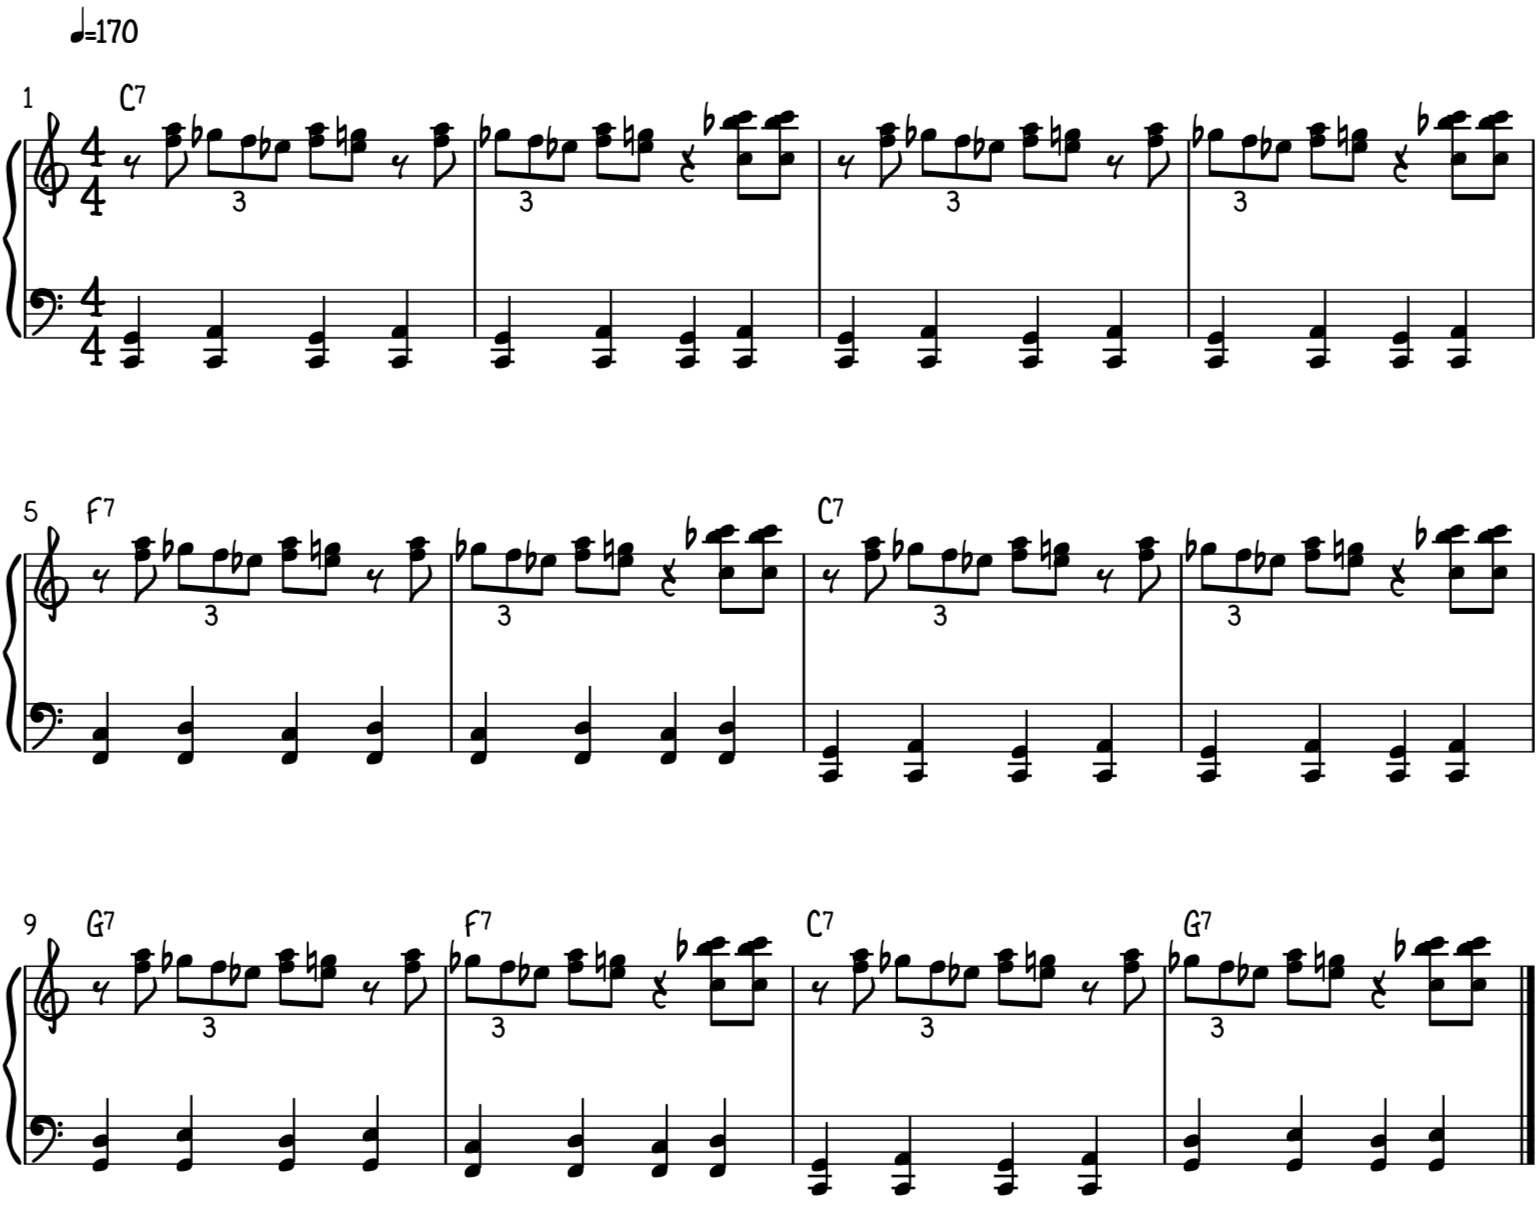 Both hands of the boogie-woogie piano lick using the boogie-shuffle left hand bass line